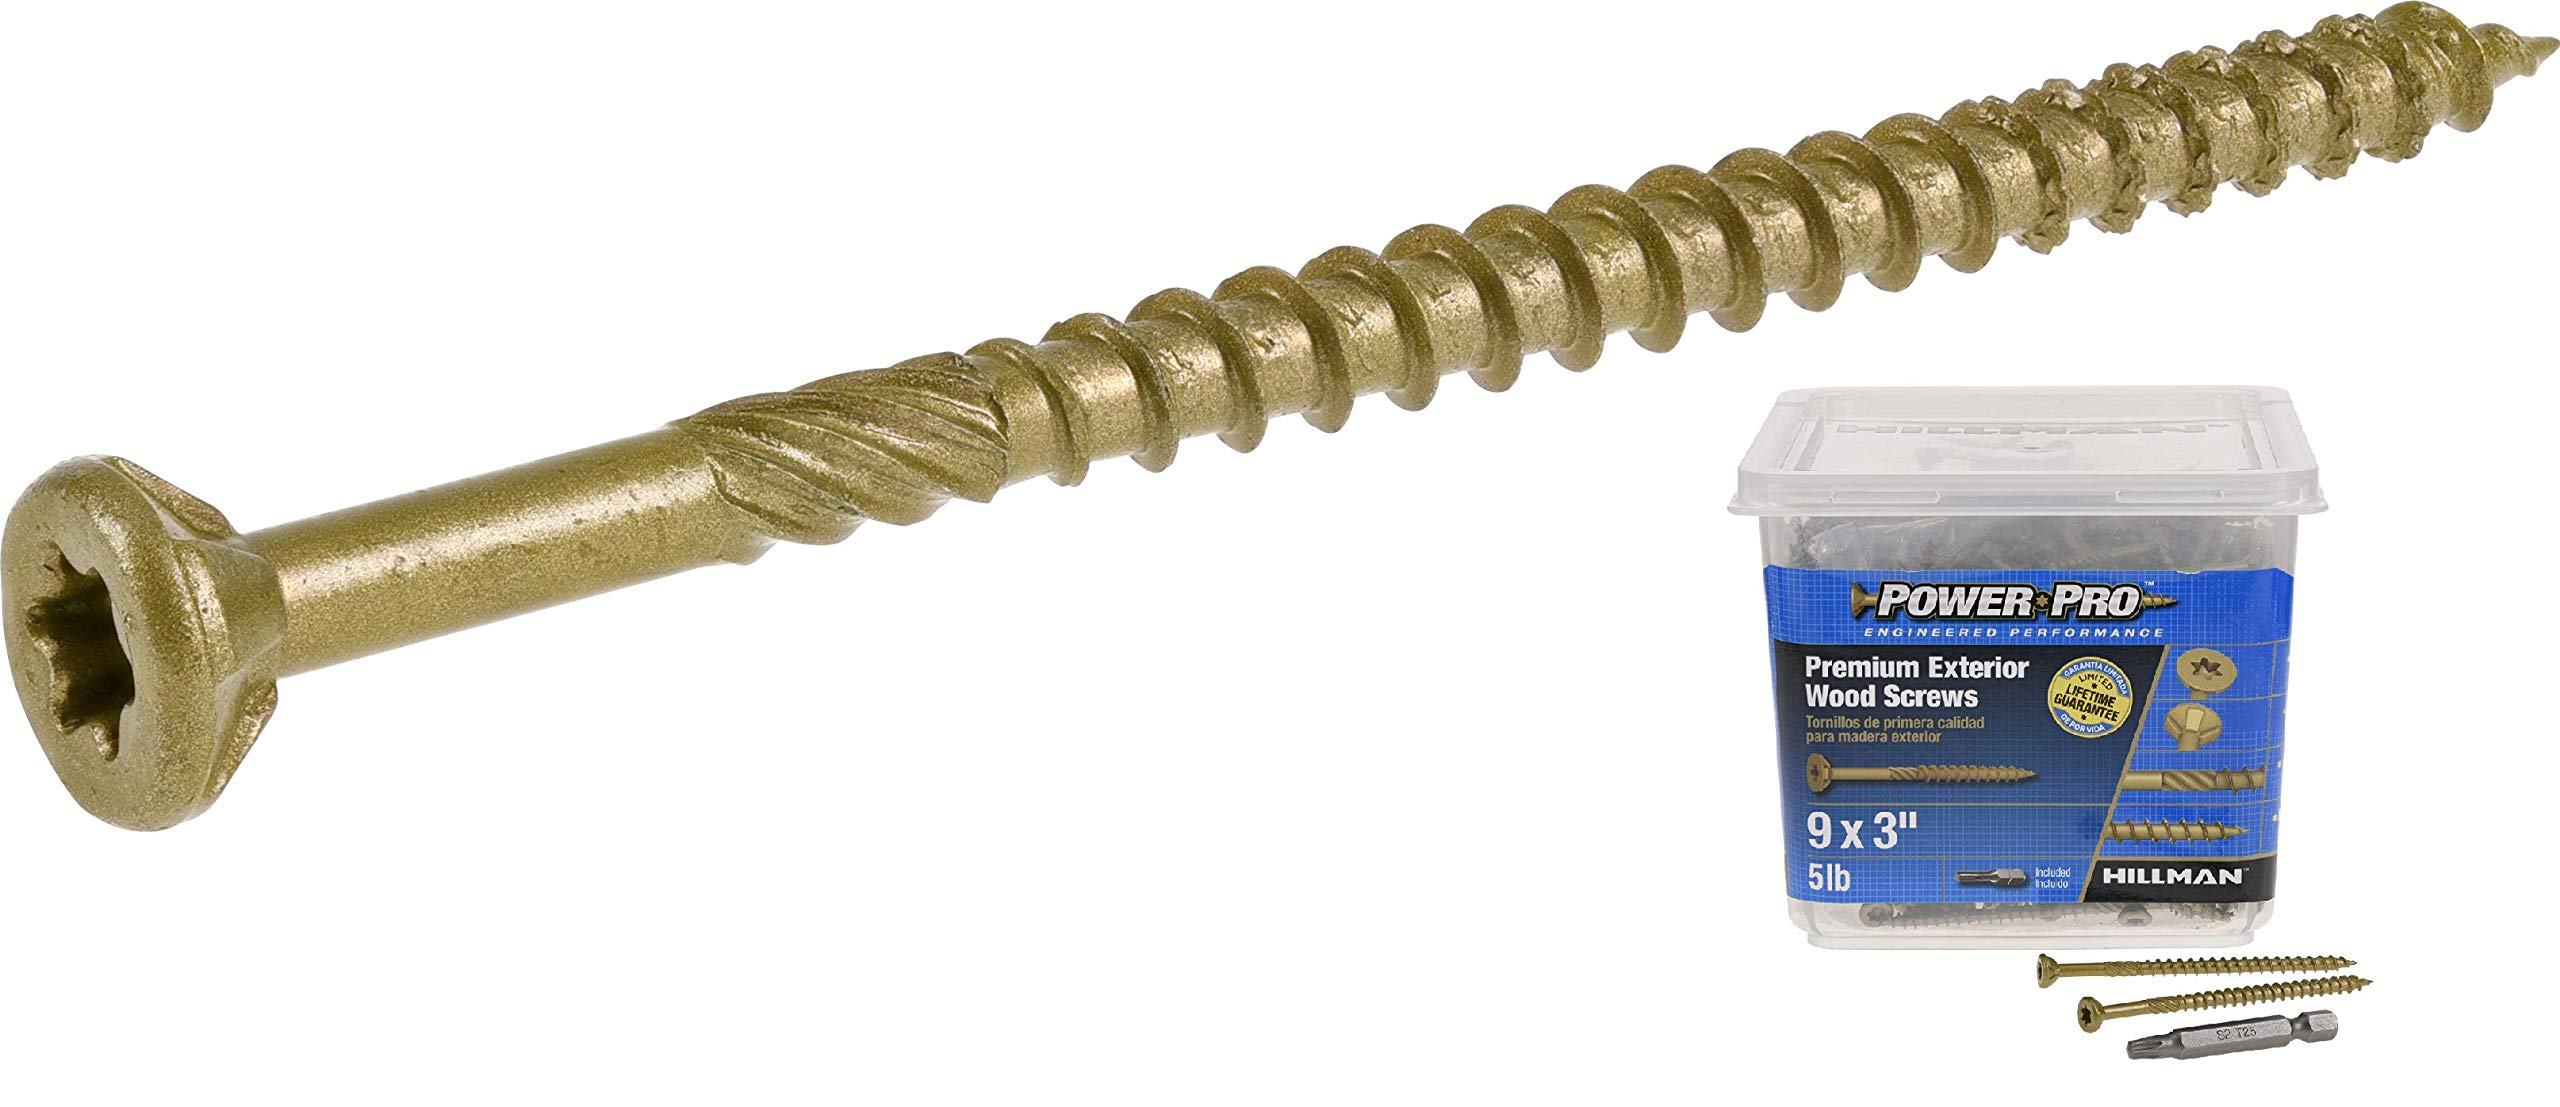 Hillman Power Pro 48611 Premium No Strip Exterior Wood Screws, 9 x 3in, 450 per Pack, Bronze Coat by Hillman